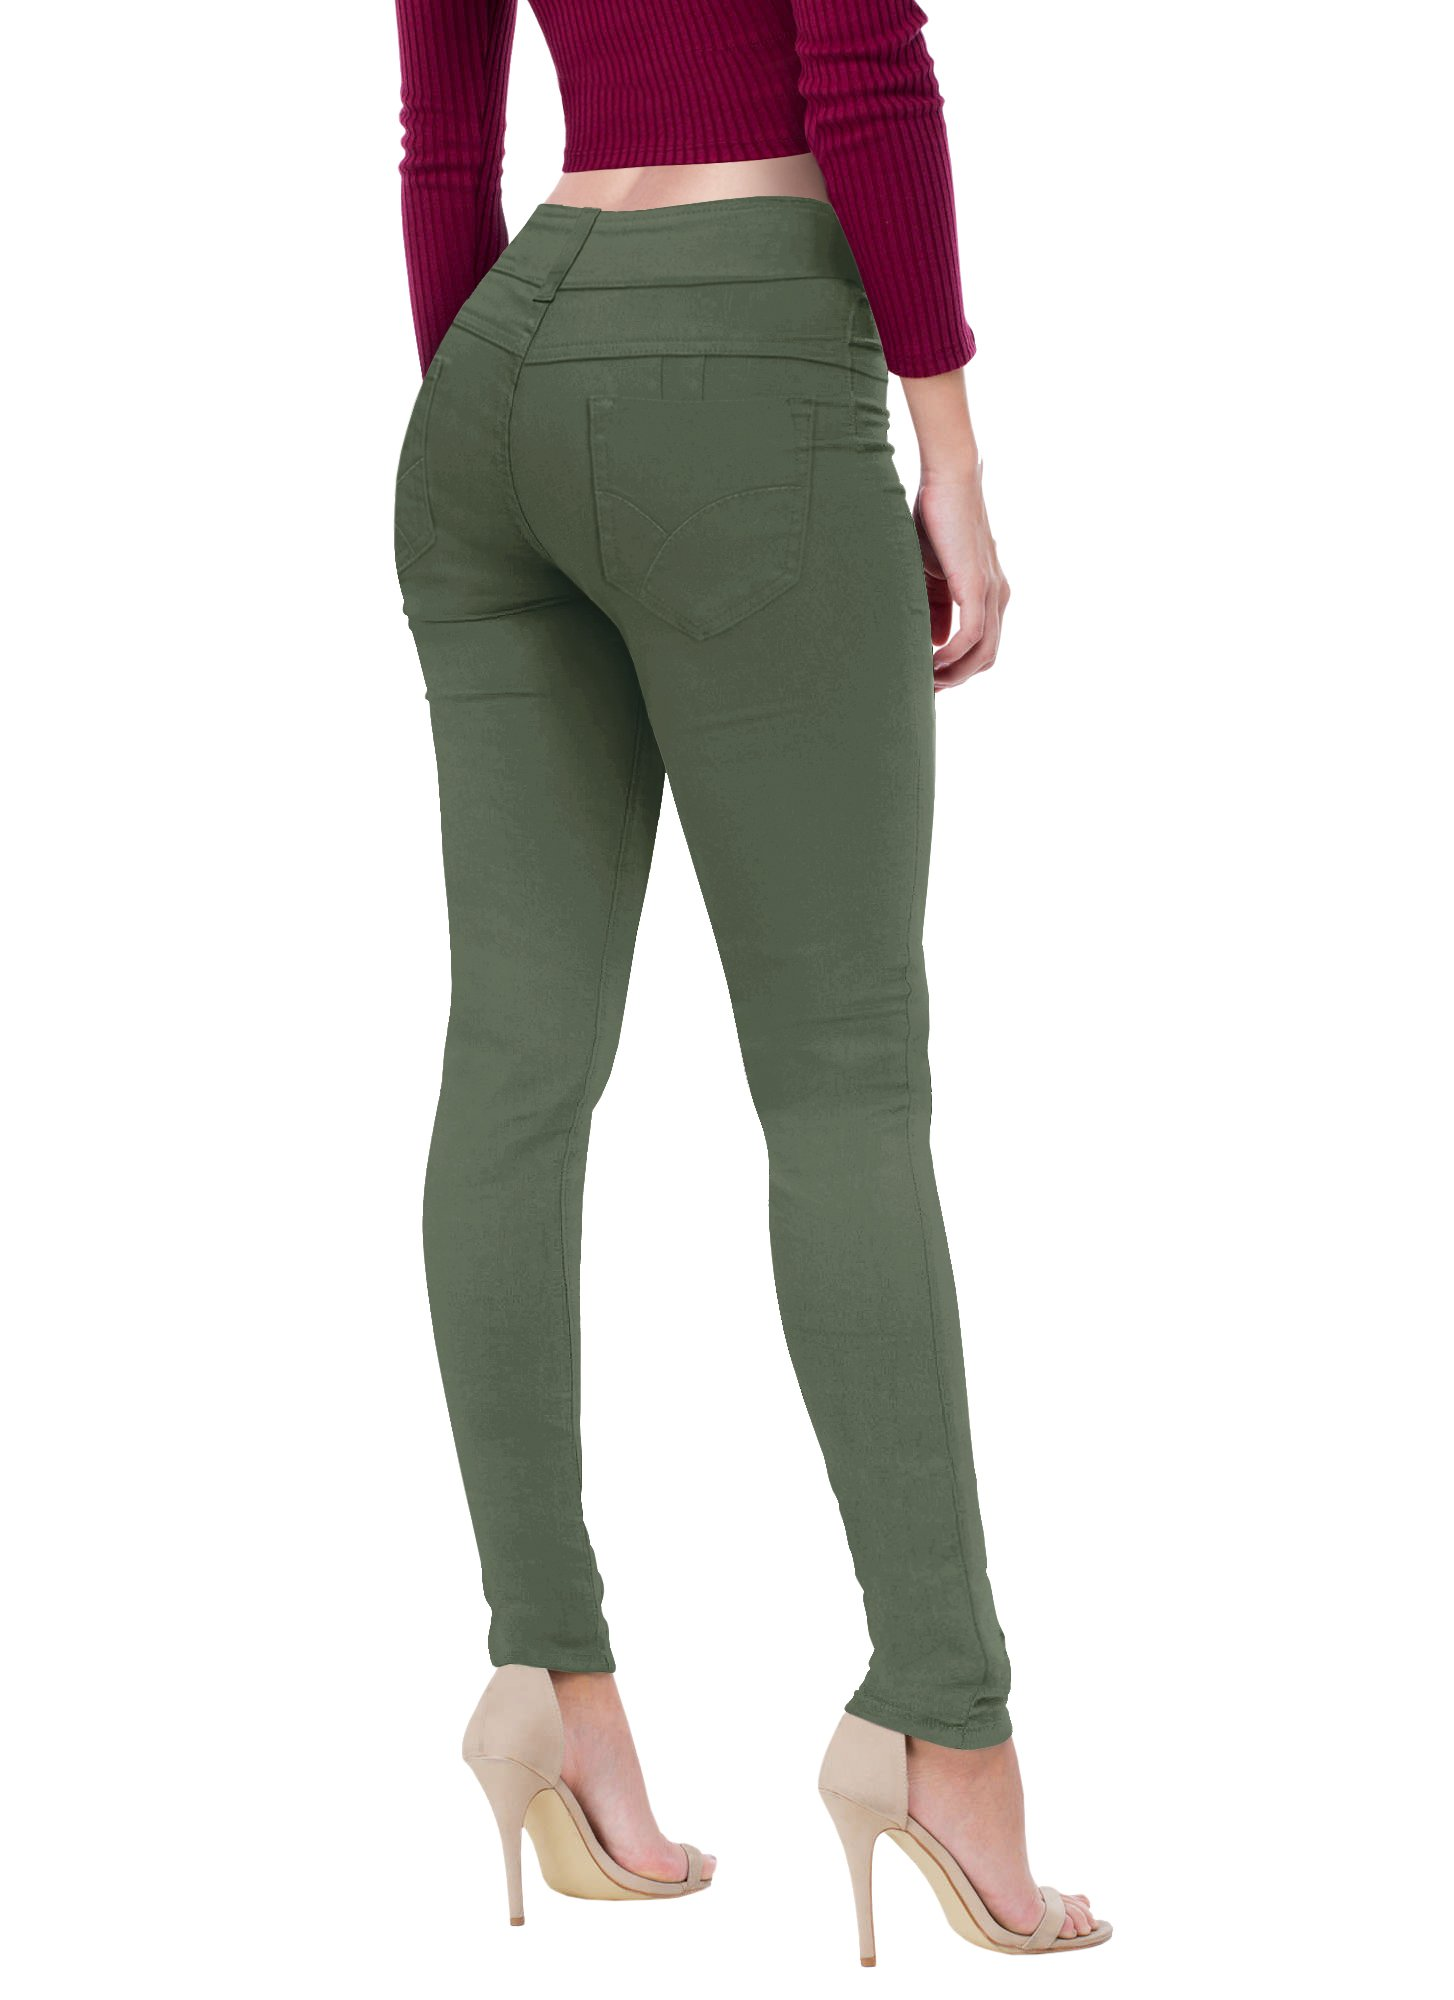 HyBrid & Company Women's Butt Lift V2 Super Comfy Stretch Denim Jeans P43637SK Olive 13